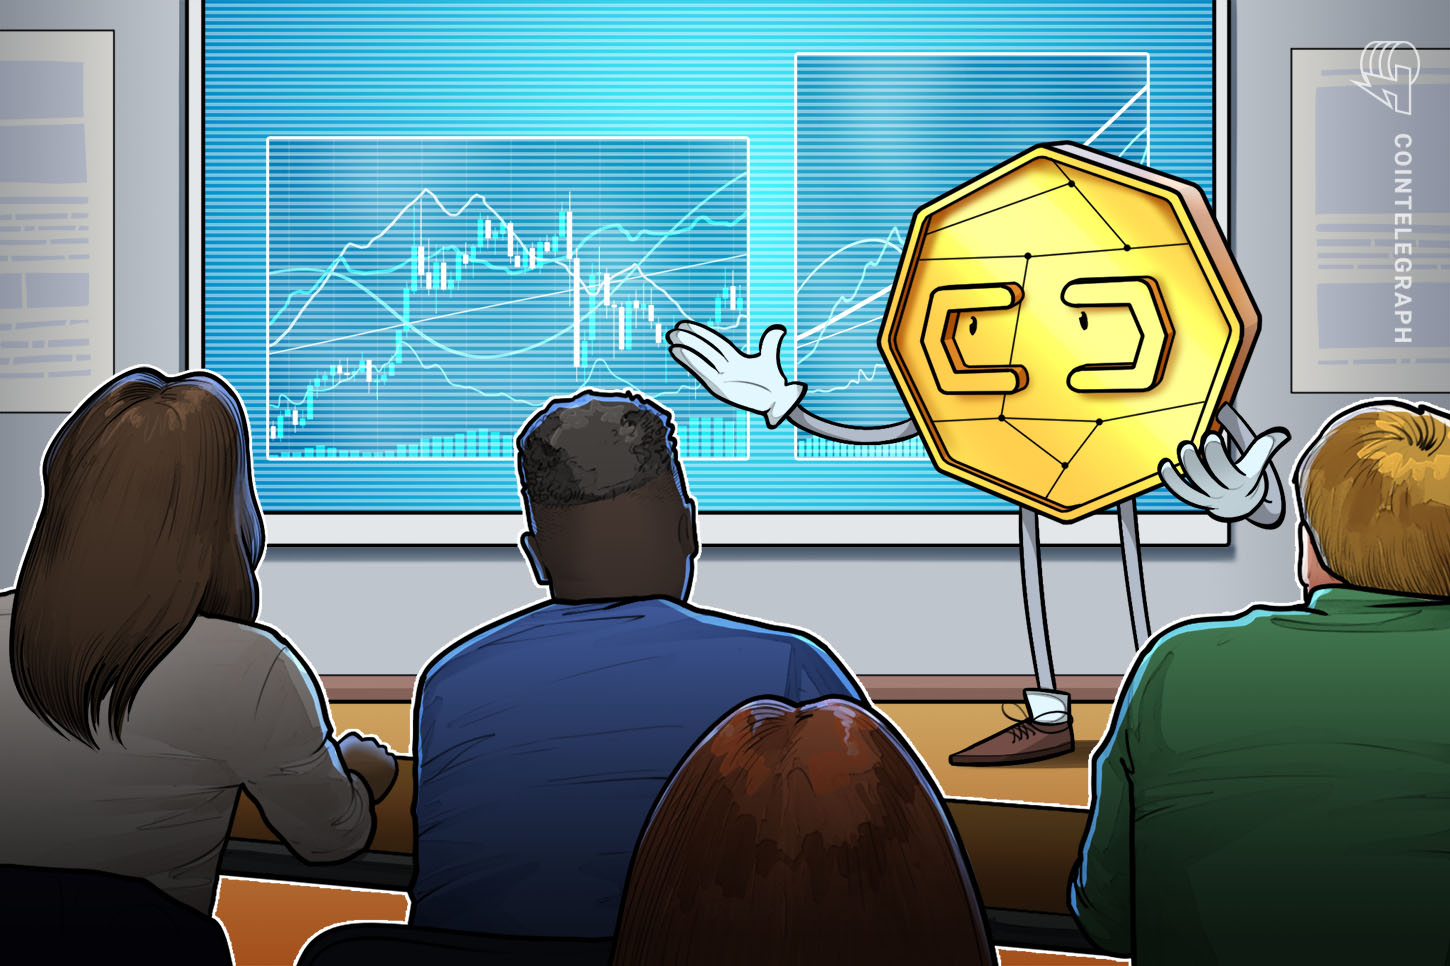 Former Bitcoin opponent says crypto is an effective hedge against currency debasement